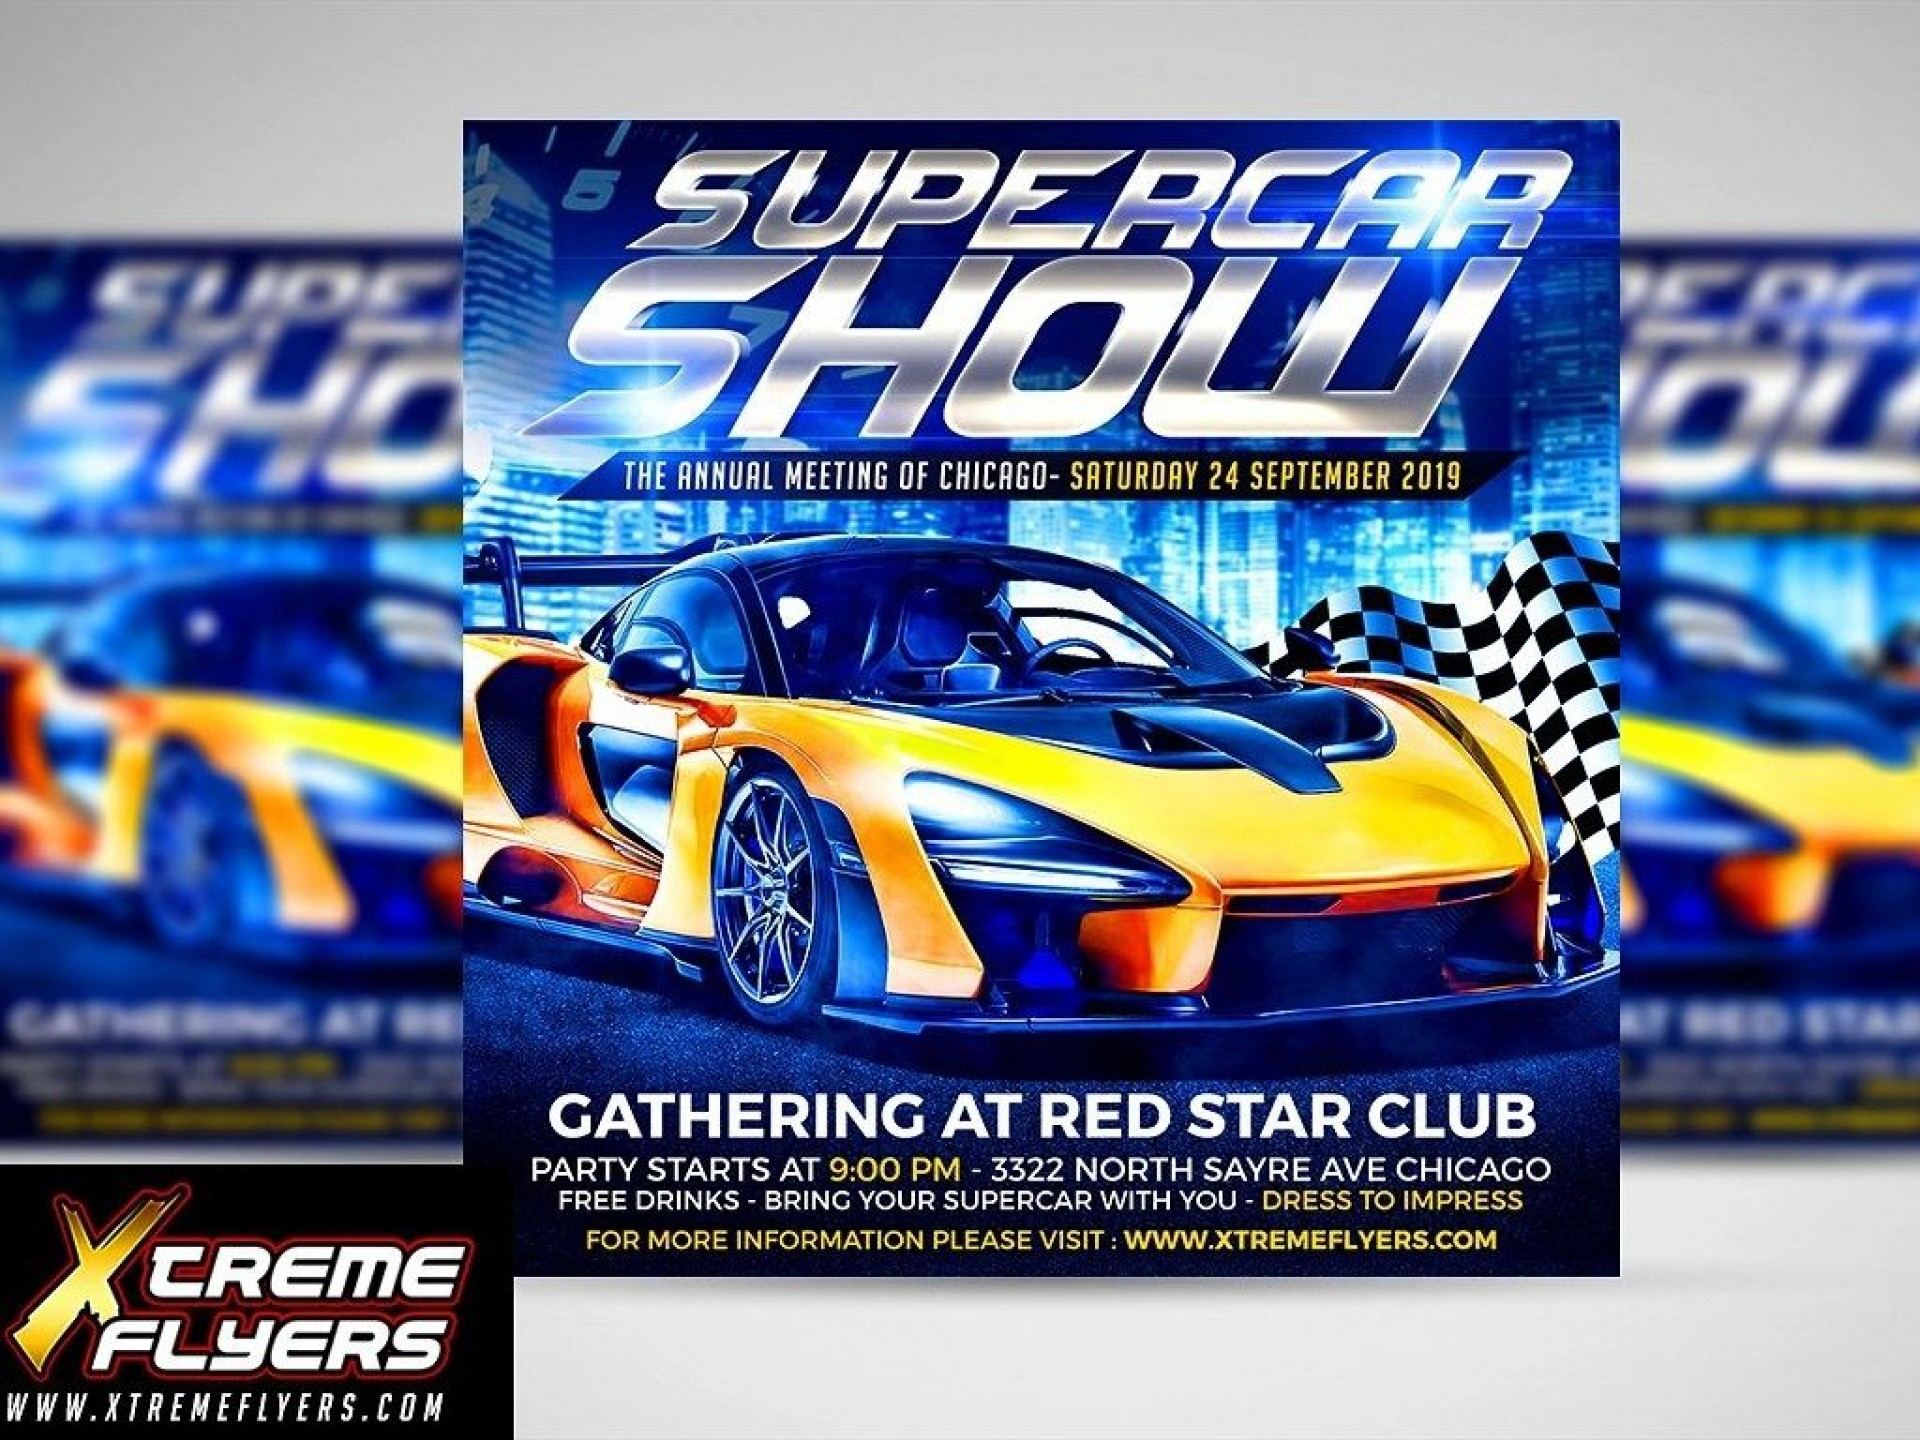 006 Unforgettable Free Car Show Flyer Template Inspiration  Psd And Bike1920